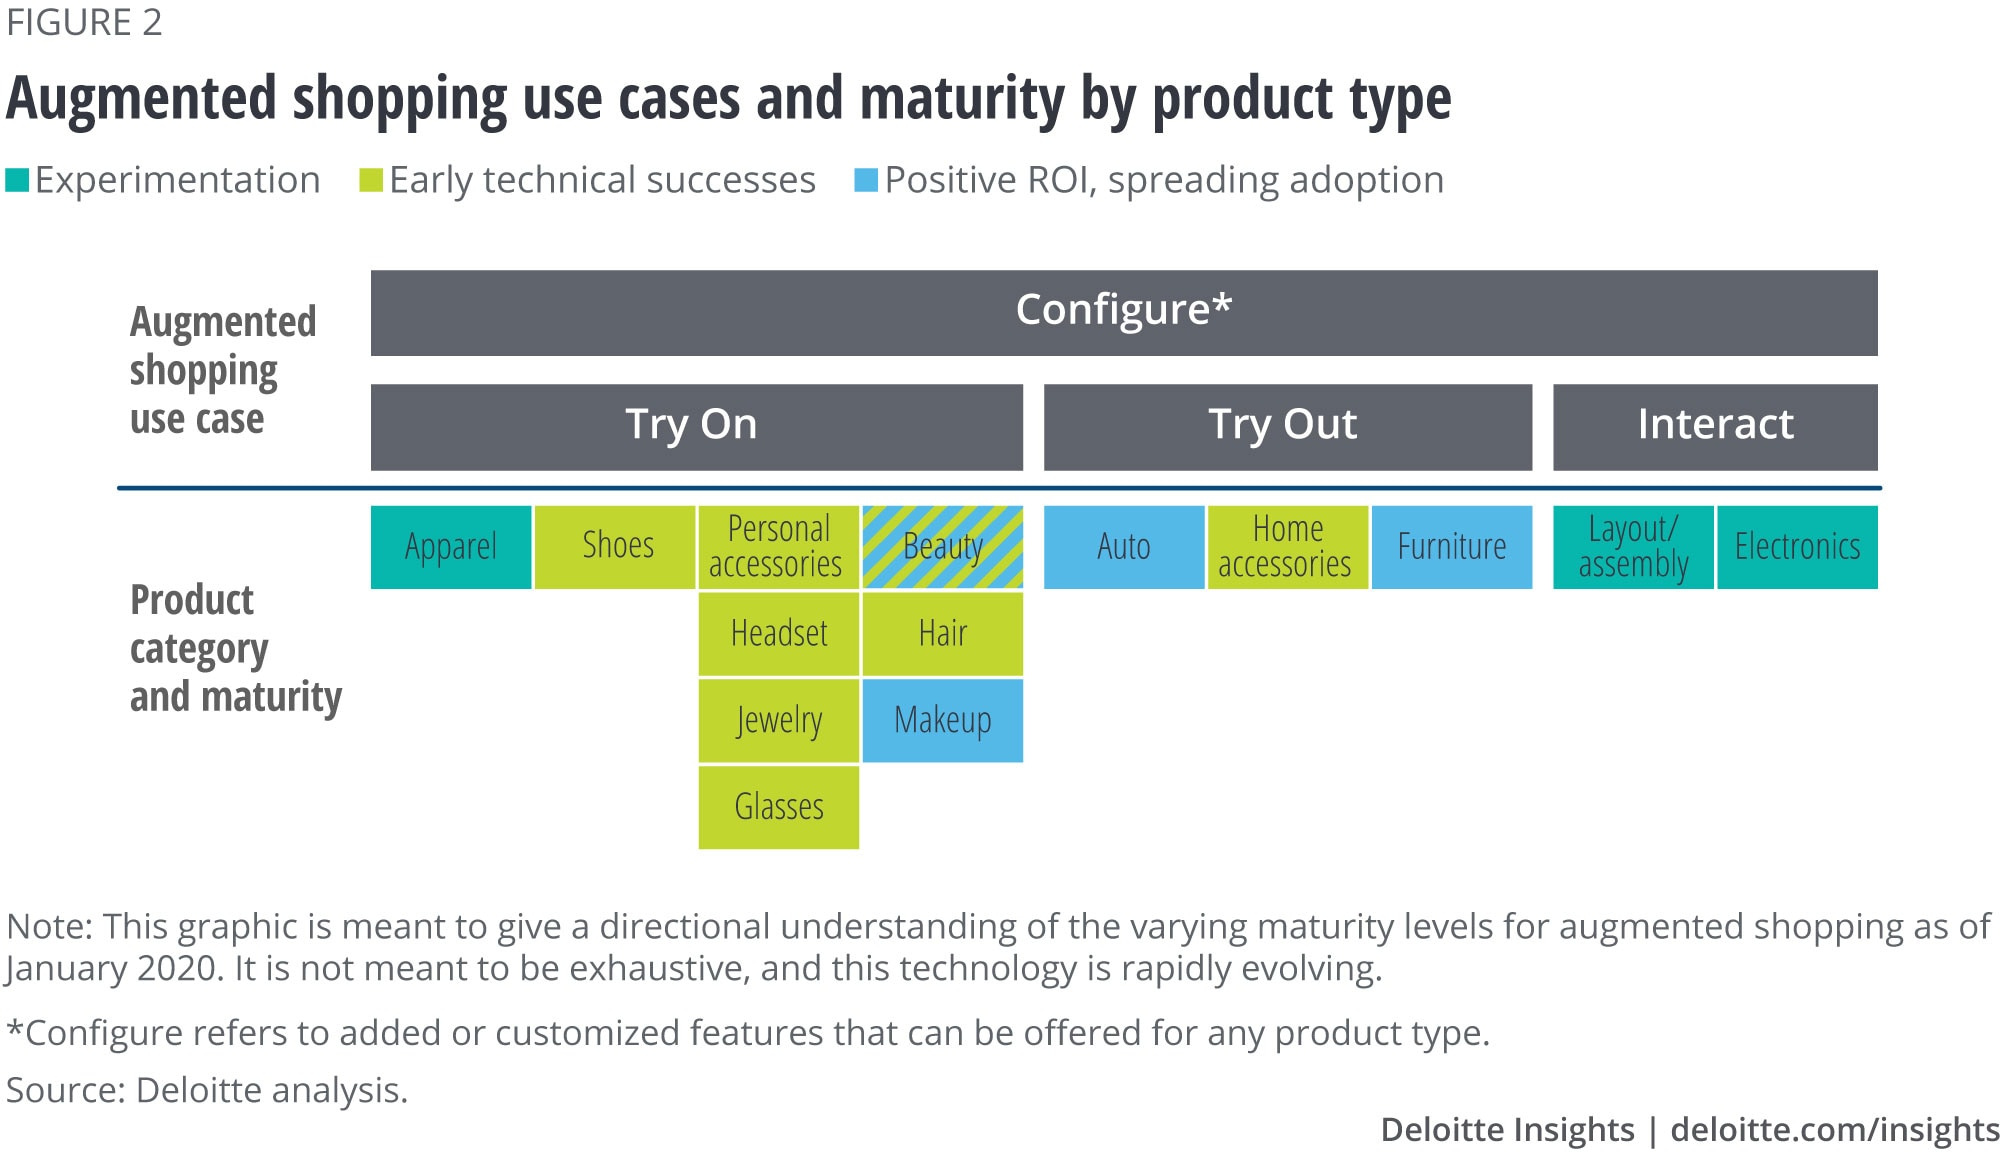 Augmented shopping use cases and maturity by product type